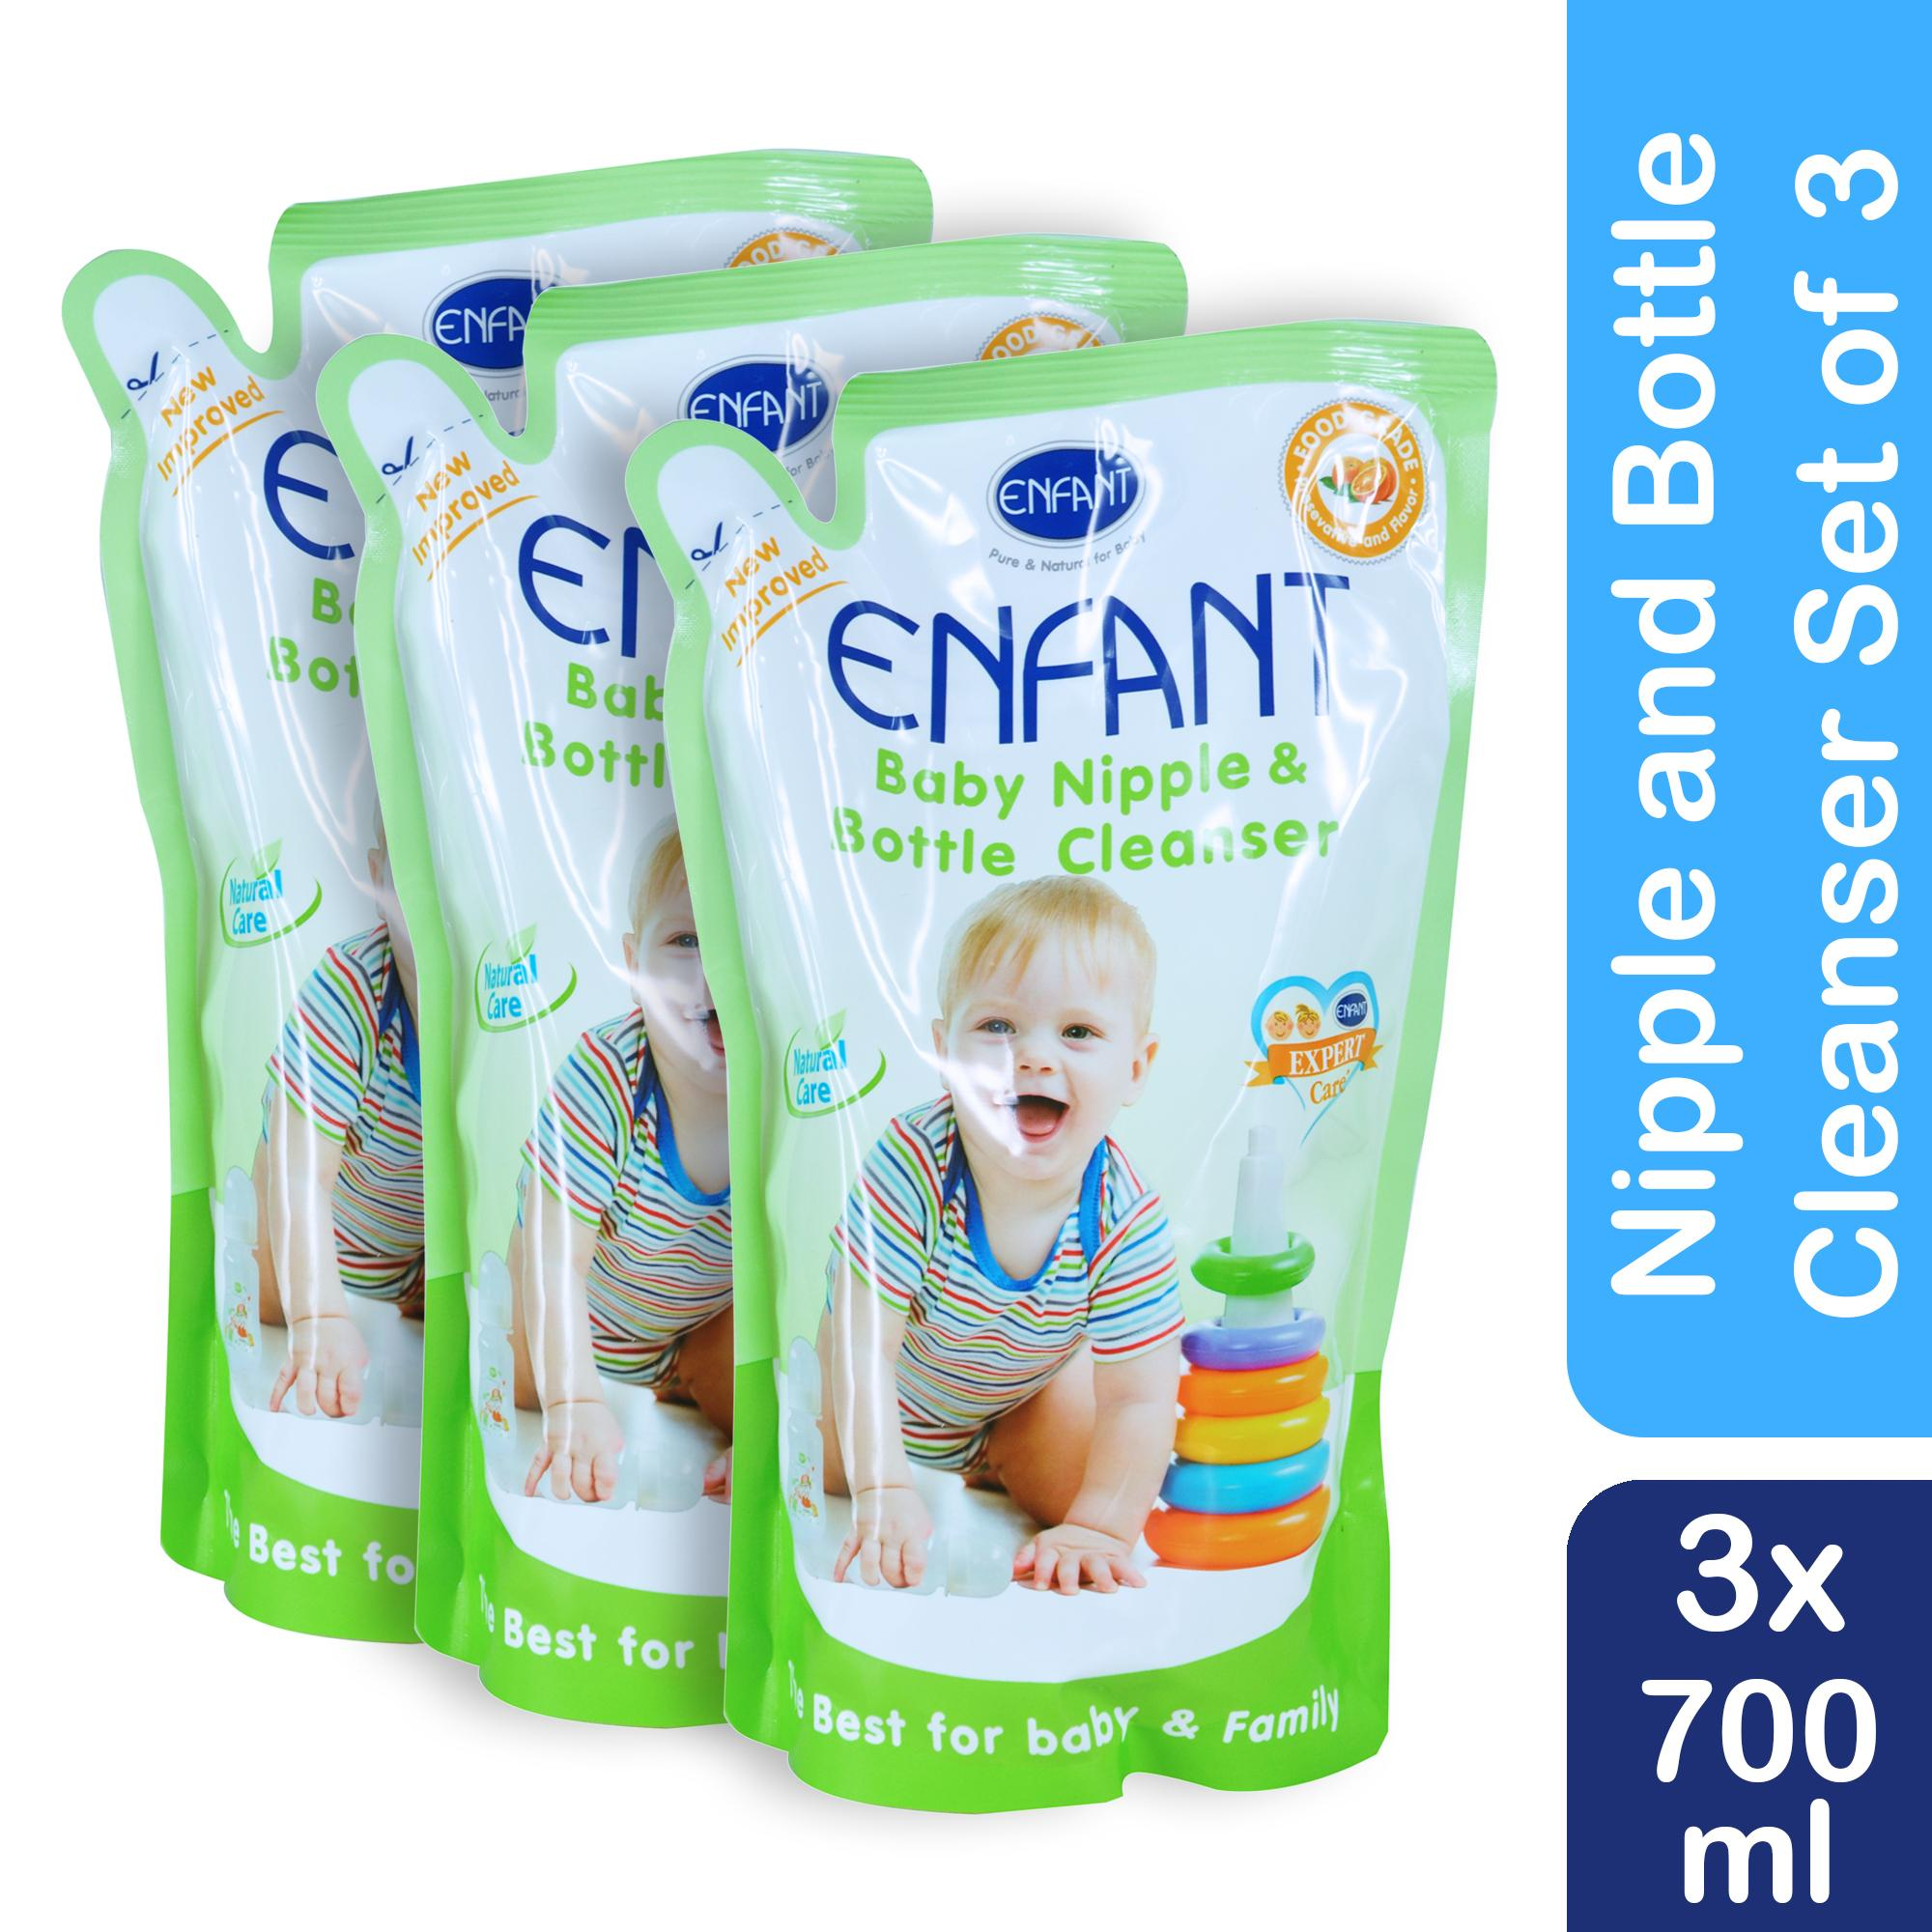 Enfant Nipple And Baby Bottle Liquid Cleanser 700 Ml (pack Of 3) By Enfant Specialty Shop.